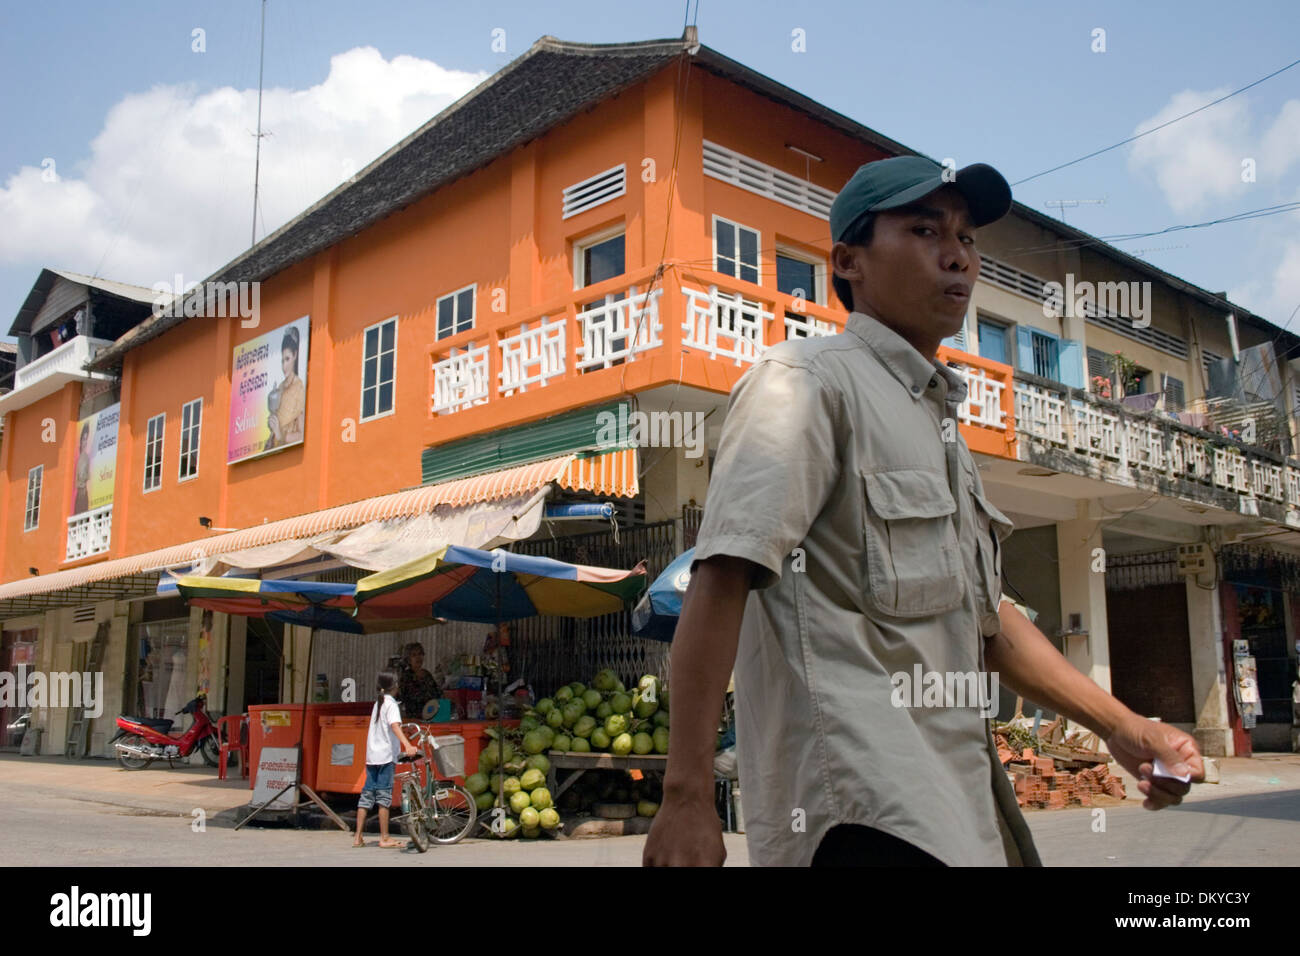 A man is walking past a bright orange building on a city street in Battambang, Cambodia. Stock Photo